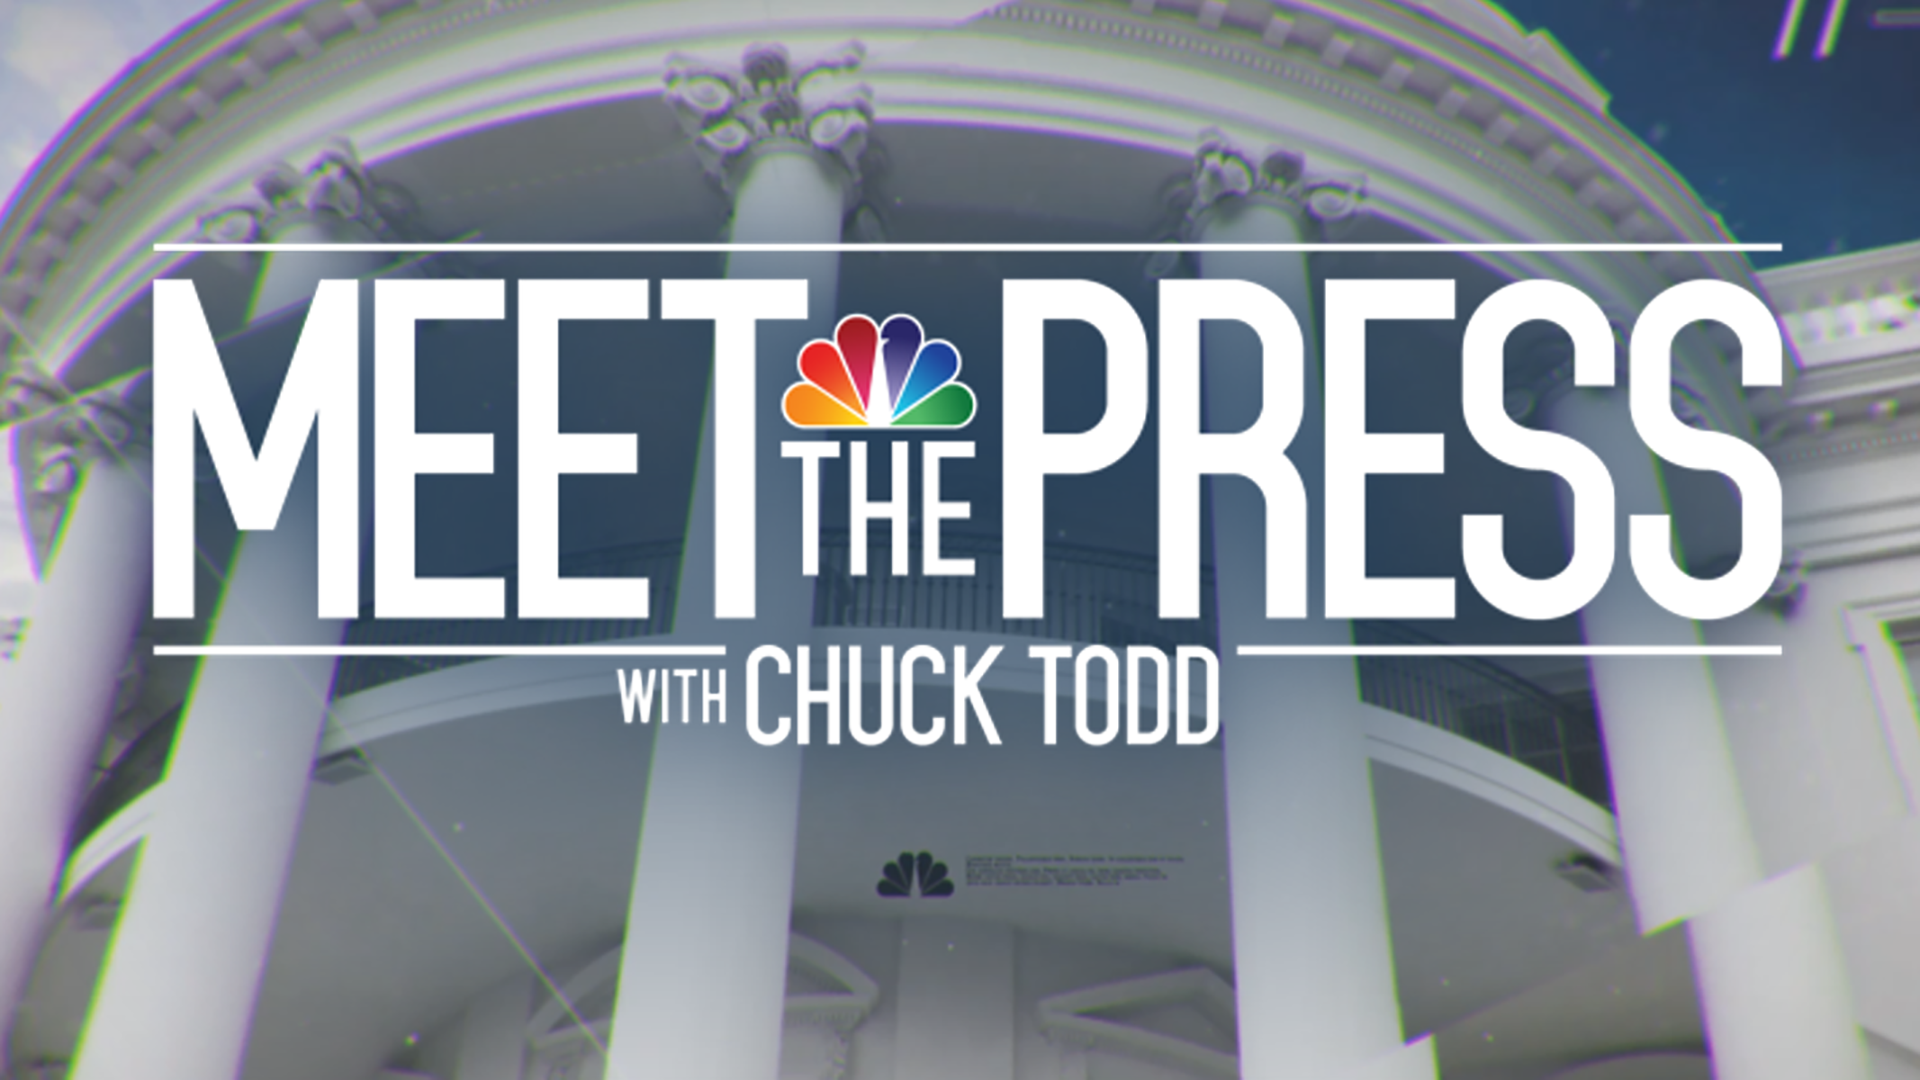 Meet the Press - August 25, 2019